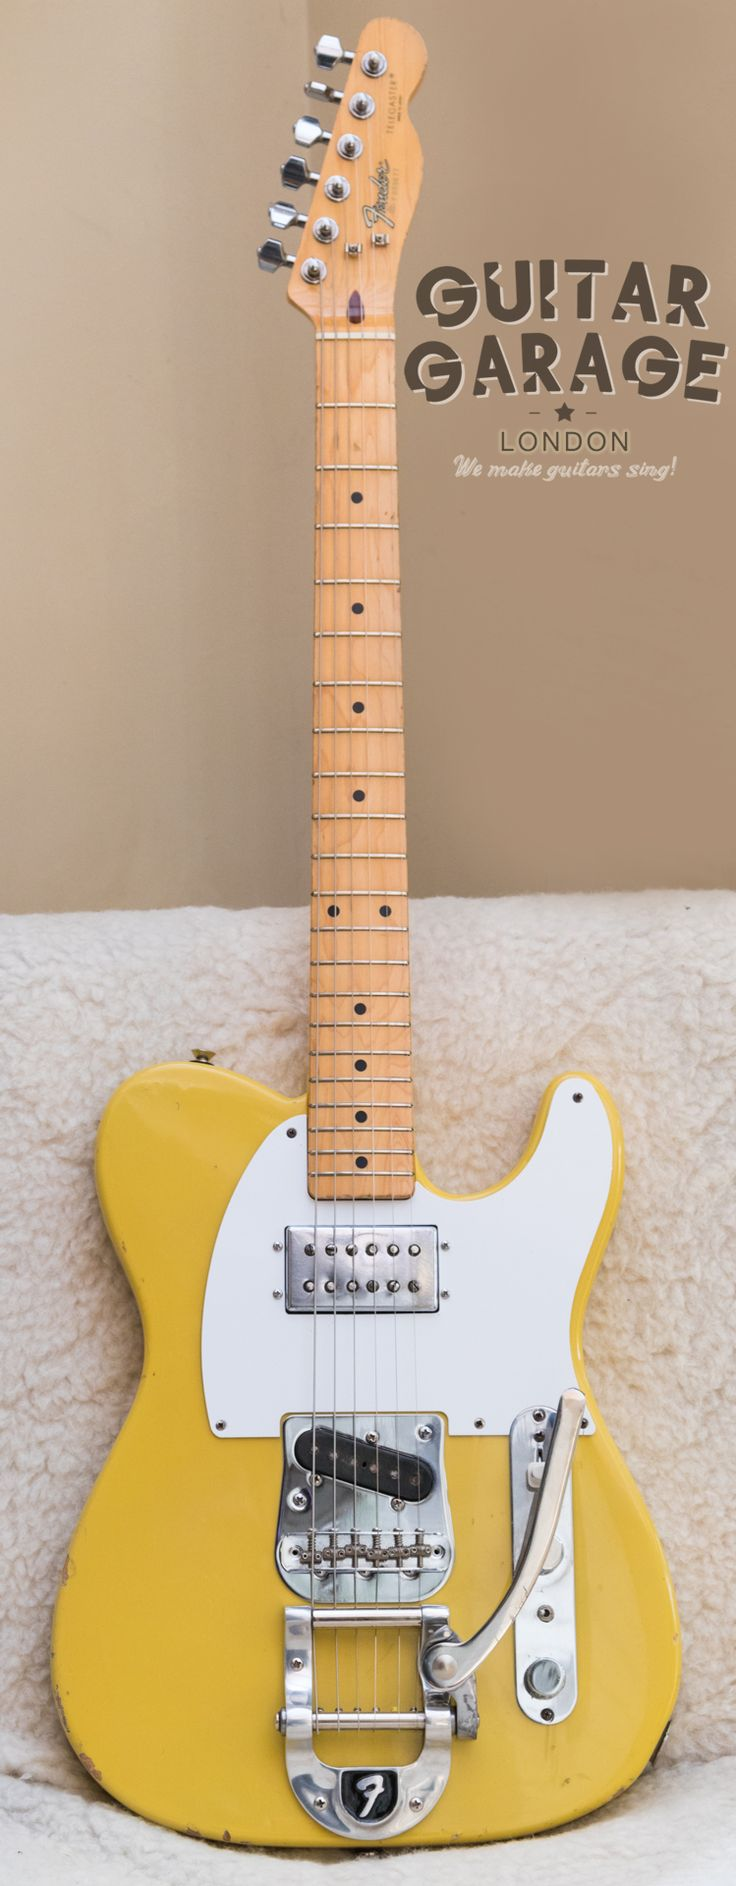 1986 Fender Japan Telecaster Custom Bigsby Wide Range humbucker